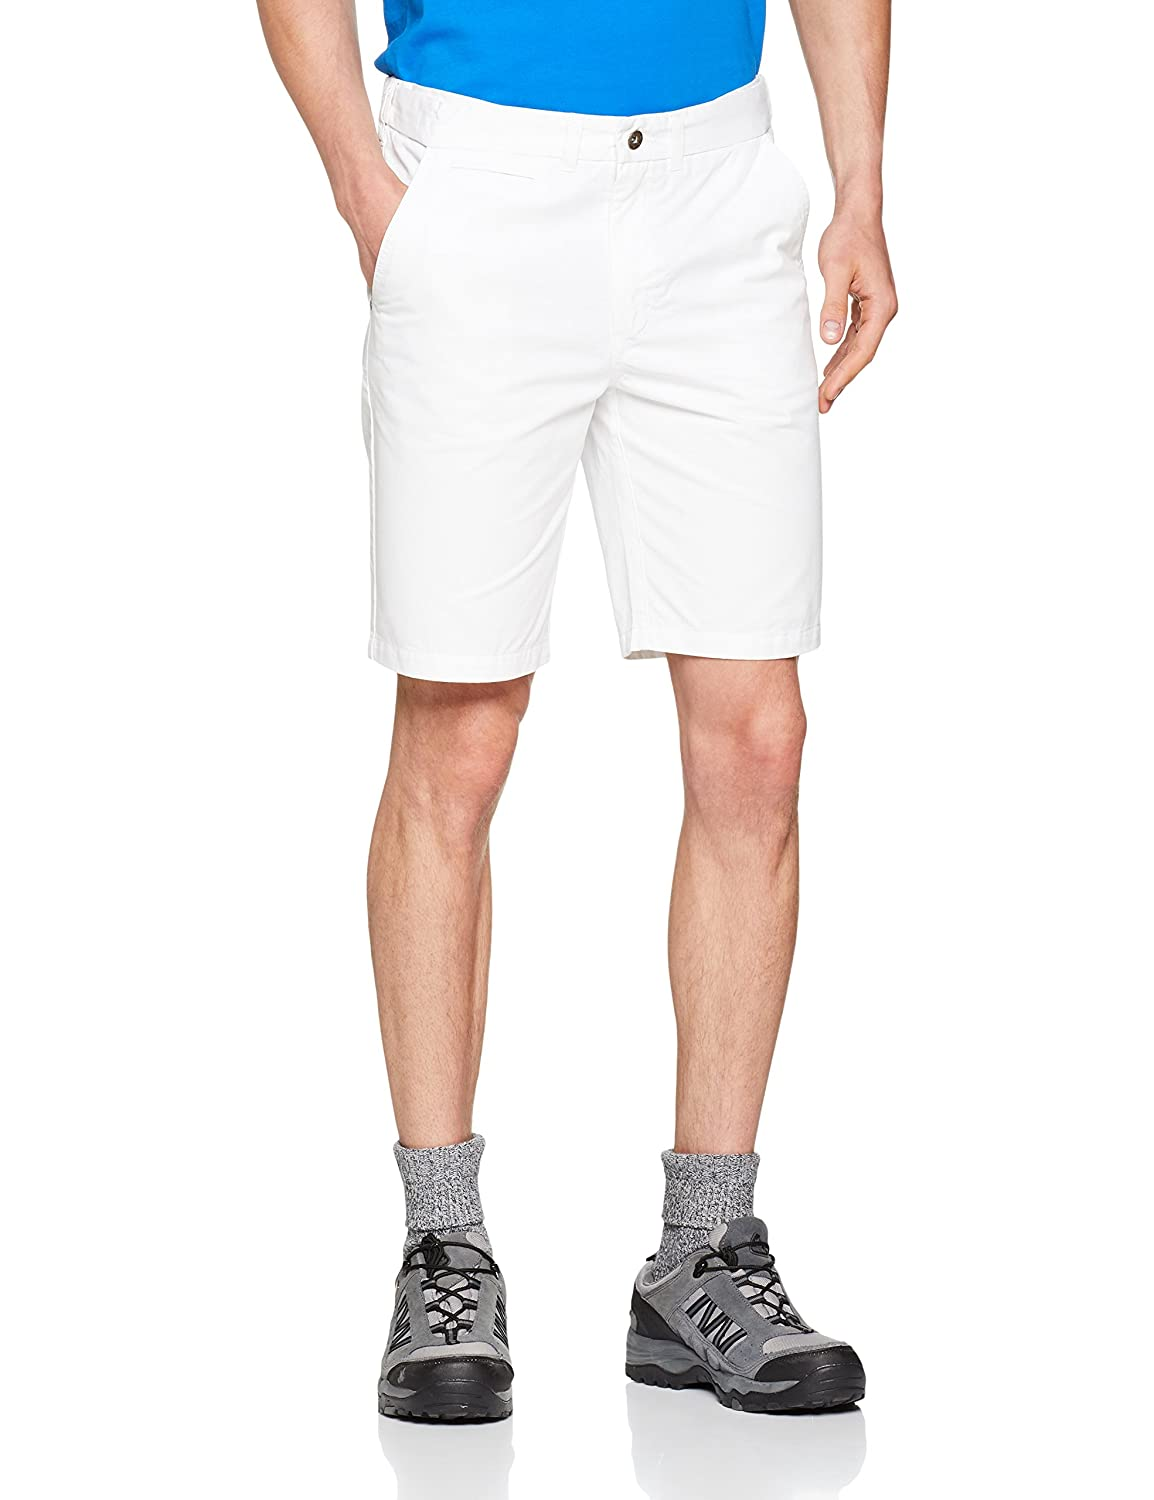 Trespass Firewall Shorts with Key Pocket for Men/Gents / Adults for Outdoor/Fun / Sports/Leisure / Beach/Holiday